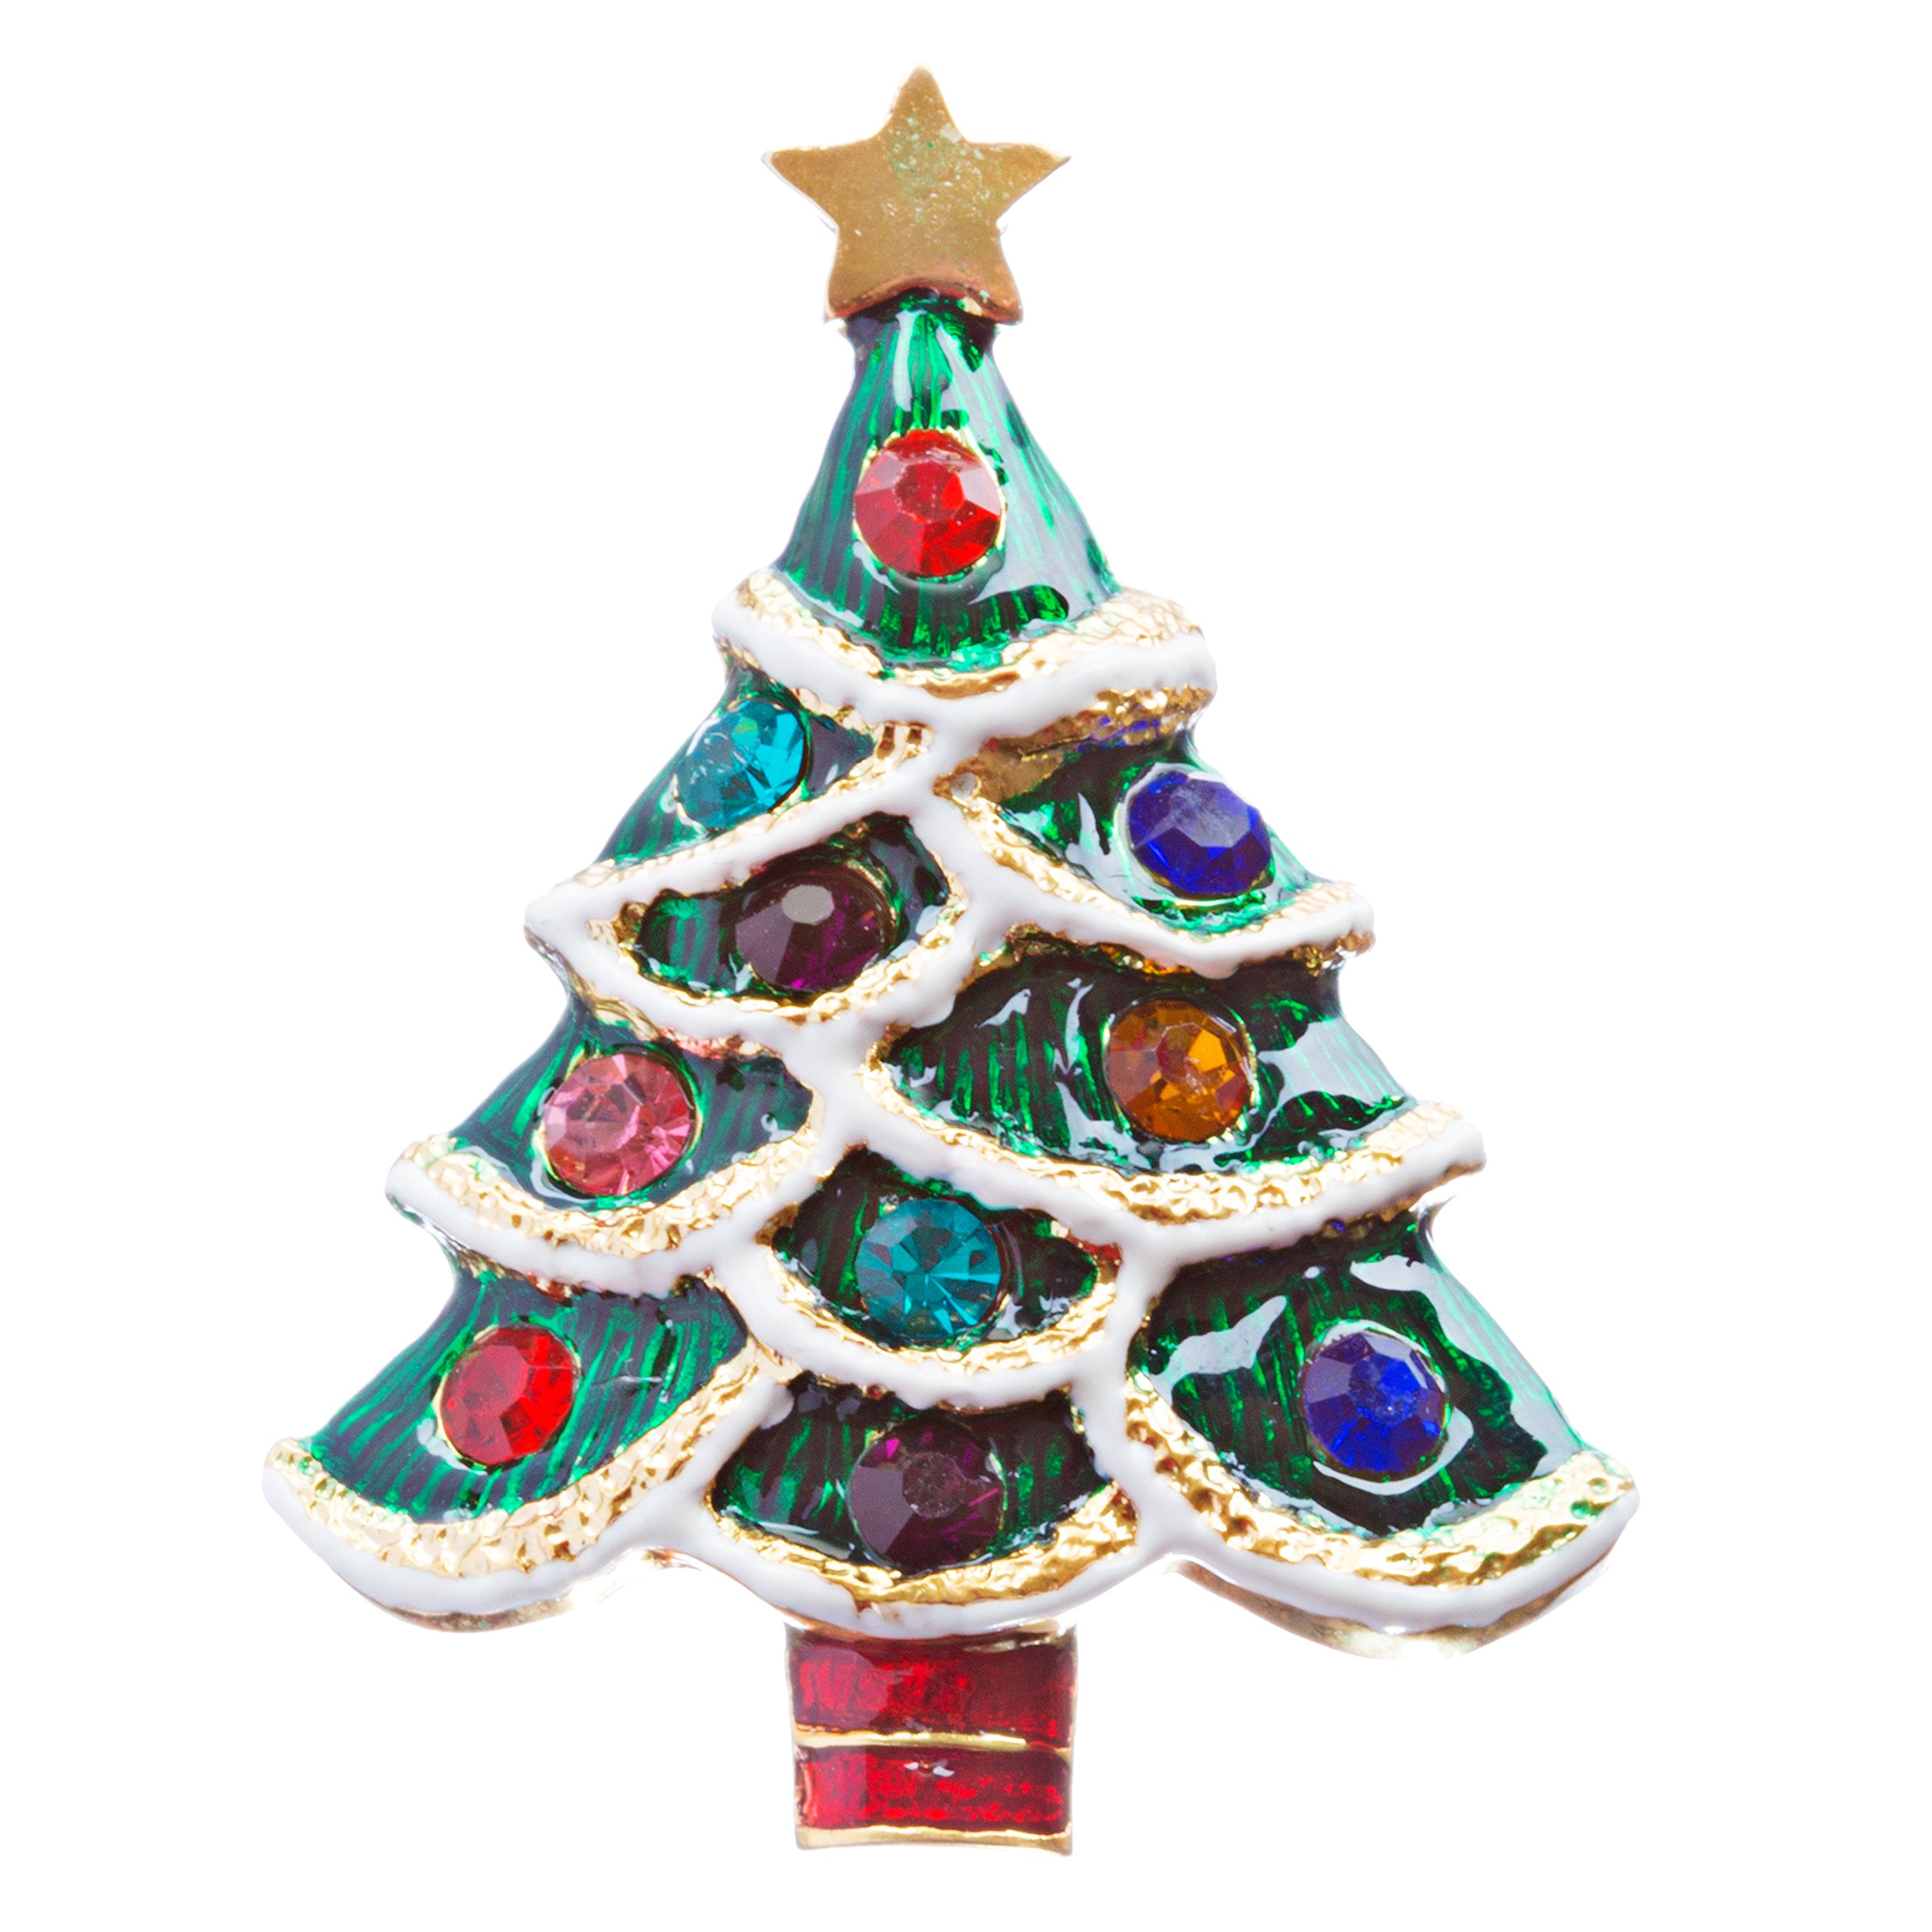 ACCESSORIESFOREVER Christmas Jewelry Crystal Rhinestone Lovable Holiday Tree Brooch Pin BH140 Multi